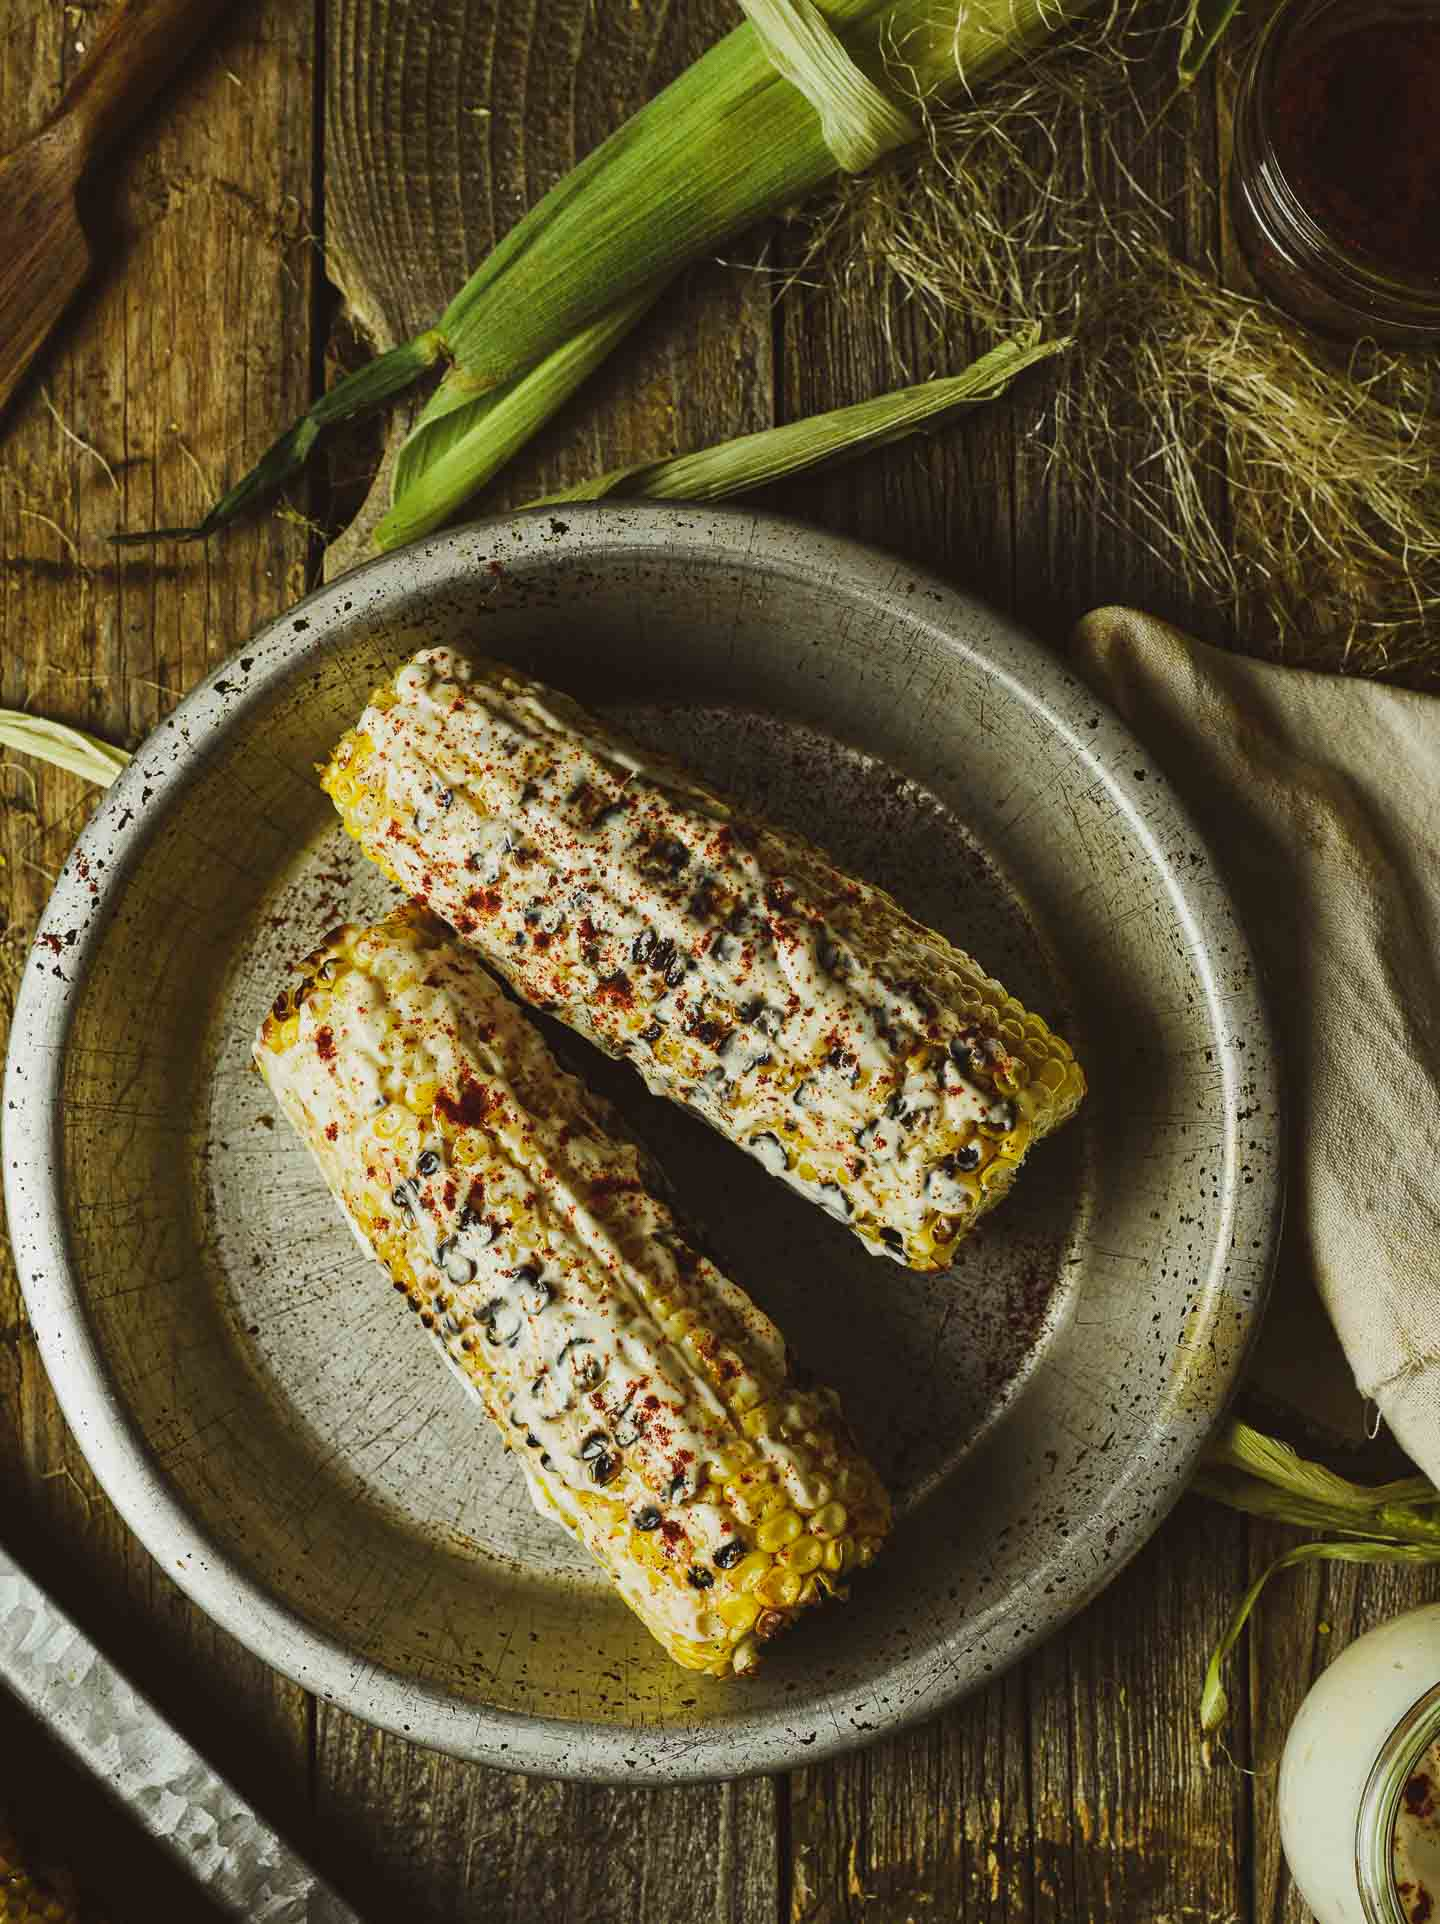 Corn on the cob with vegan mayo and smoked paprika spread.